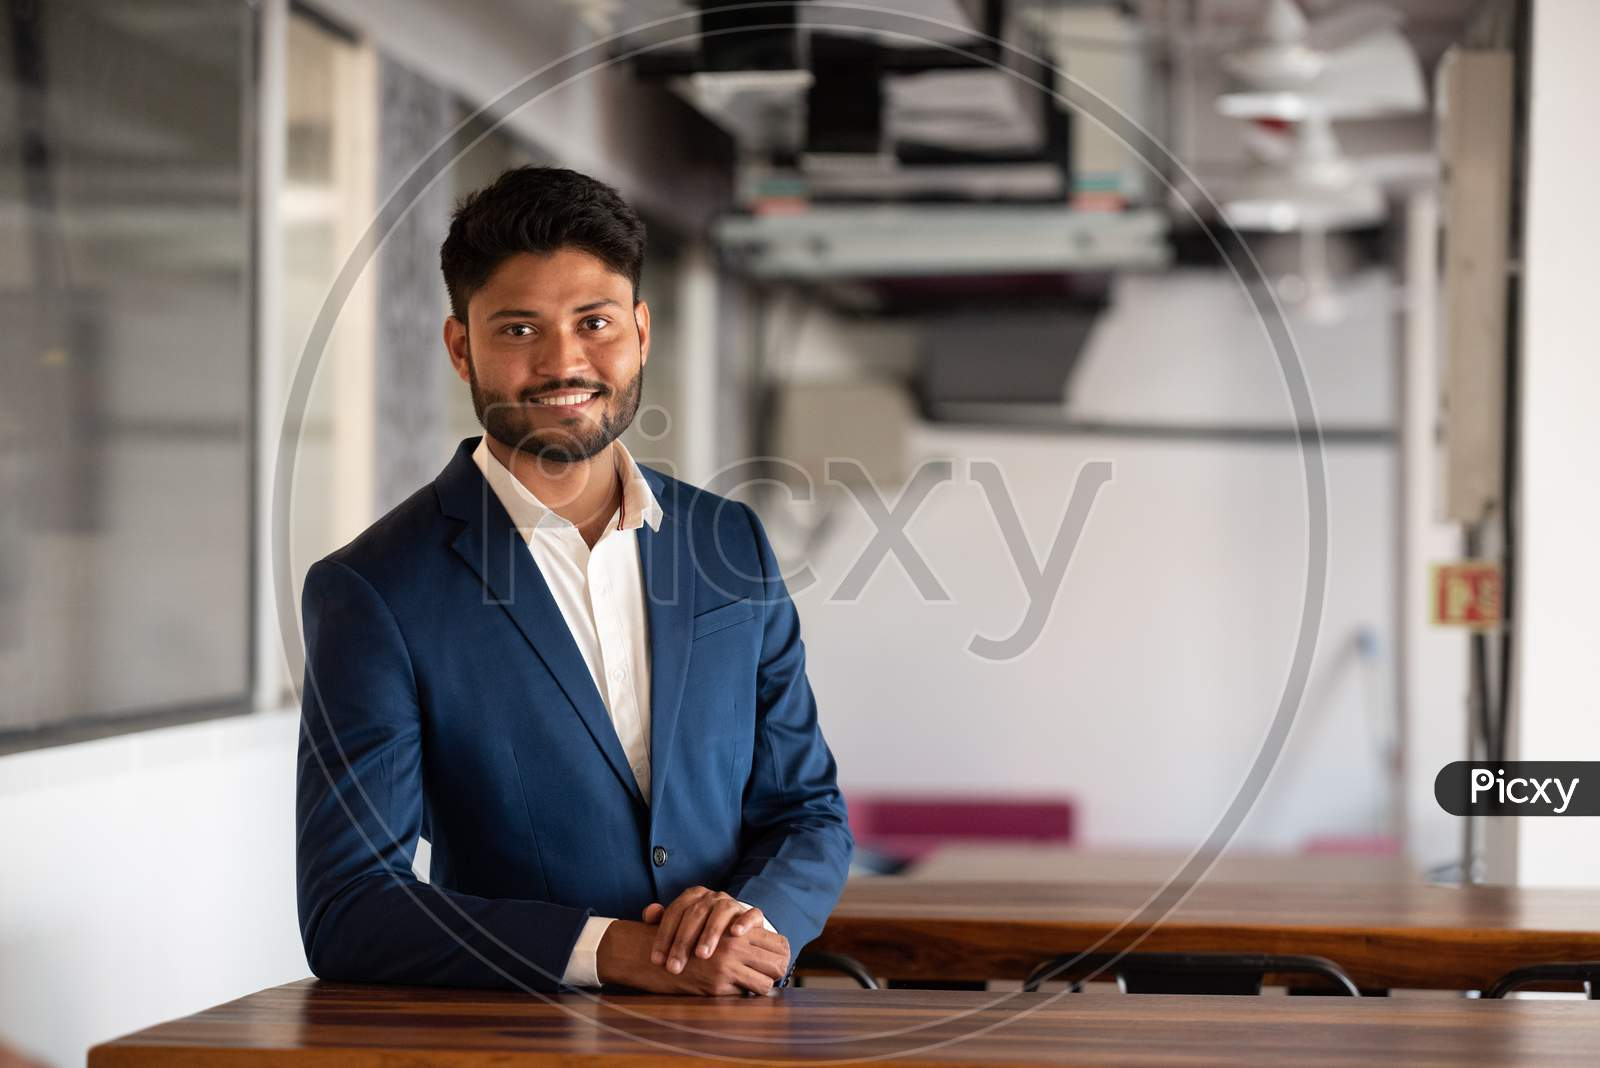 Successful Indian Businessman At Office Wearing Suite